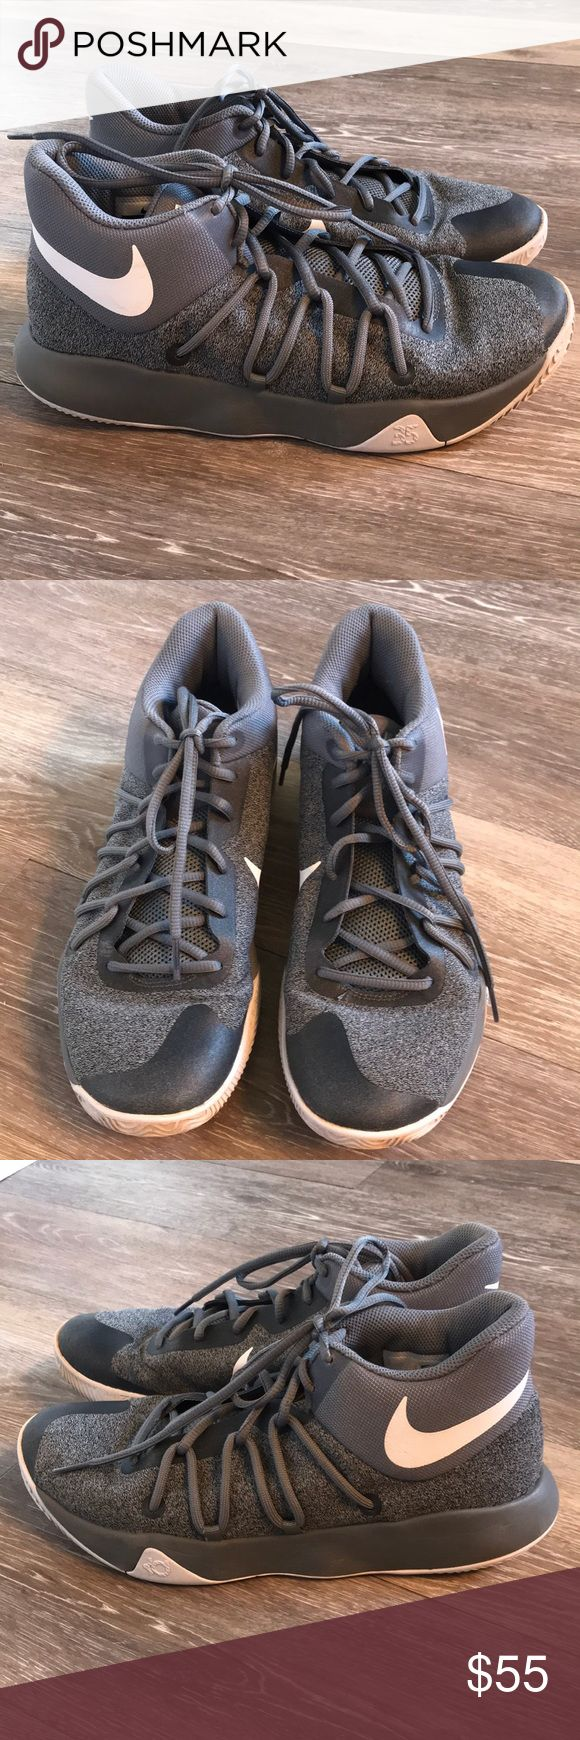 Nike Kd basketball shoes!  Size 9! Barely showing any wear.  See pictures!  Bottoms could use a wipe down.  Overall, EXCELLENT shoes!!!  Size 9 Nike Shoes Athletic Shoes